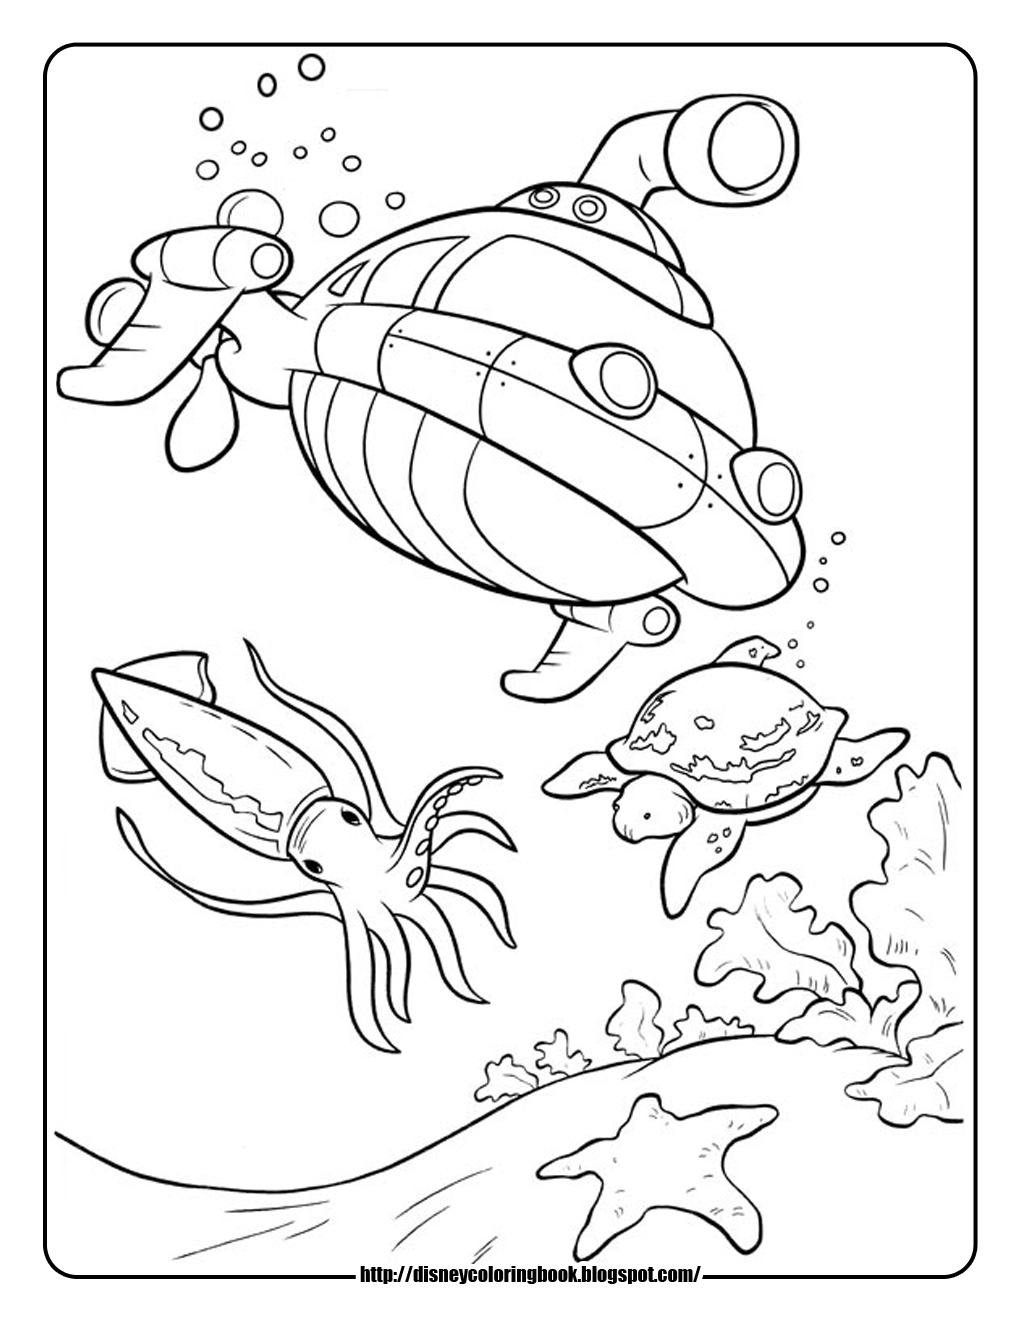 little einsteins online coloring pages - photo #25